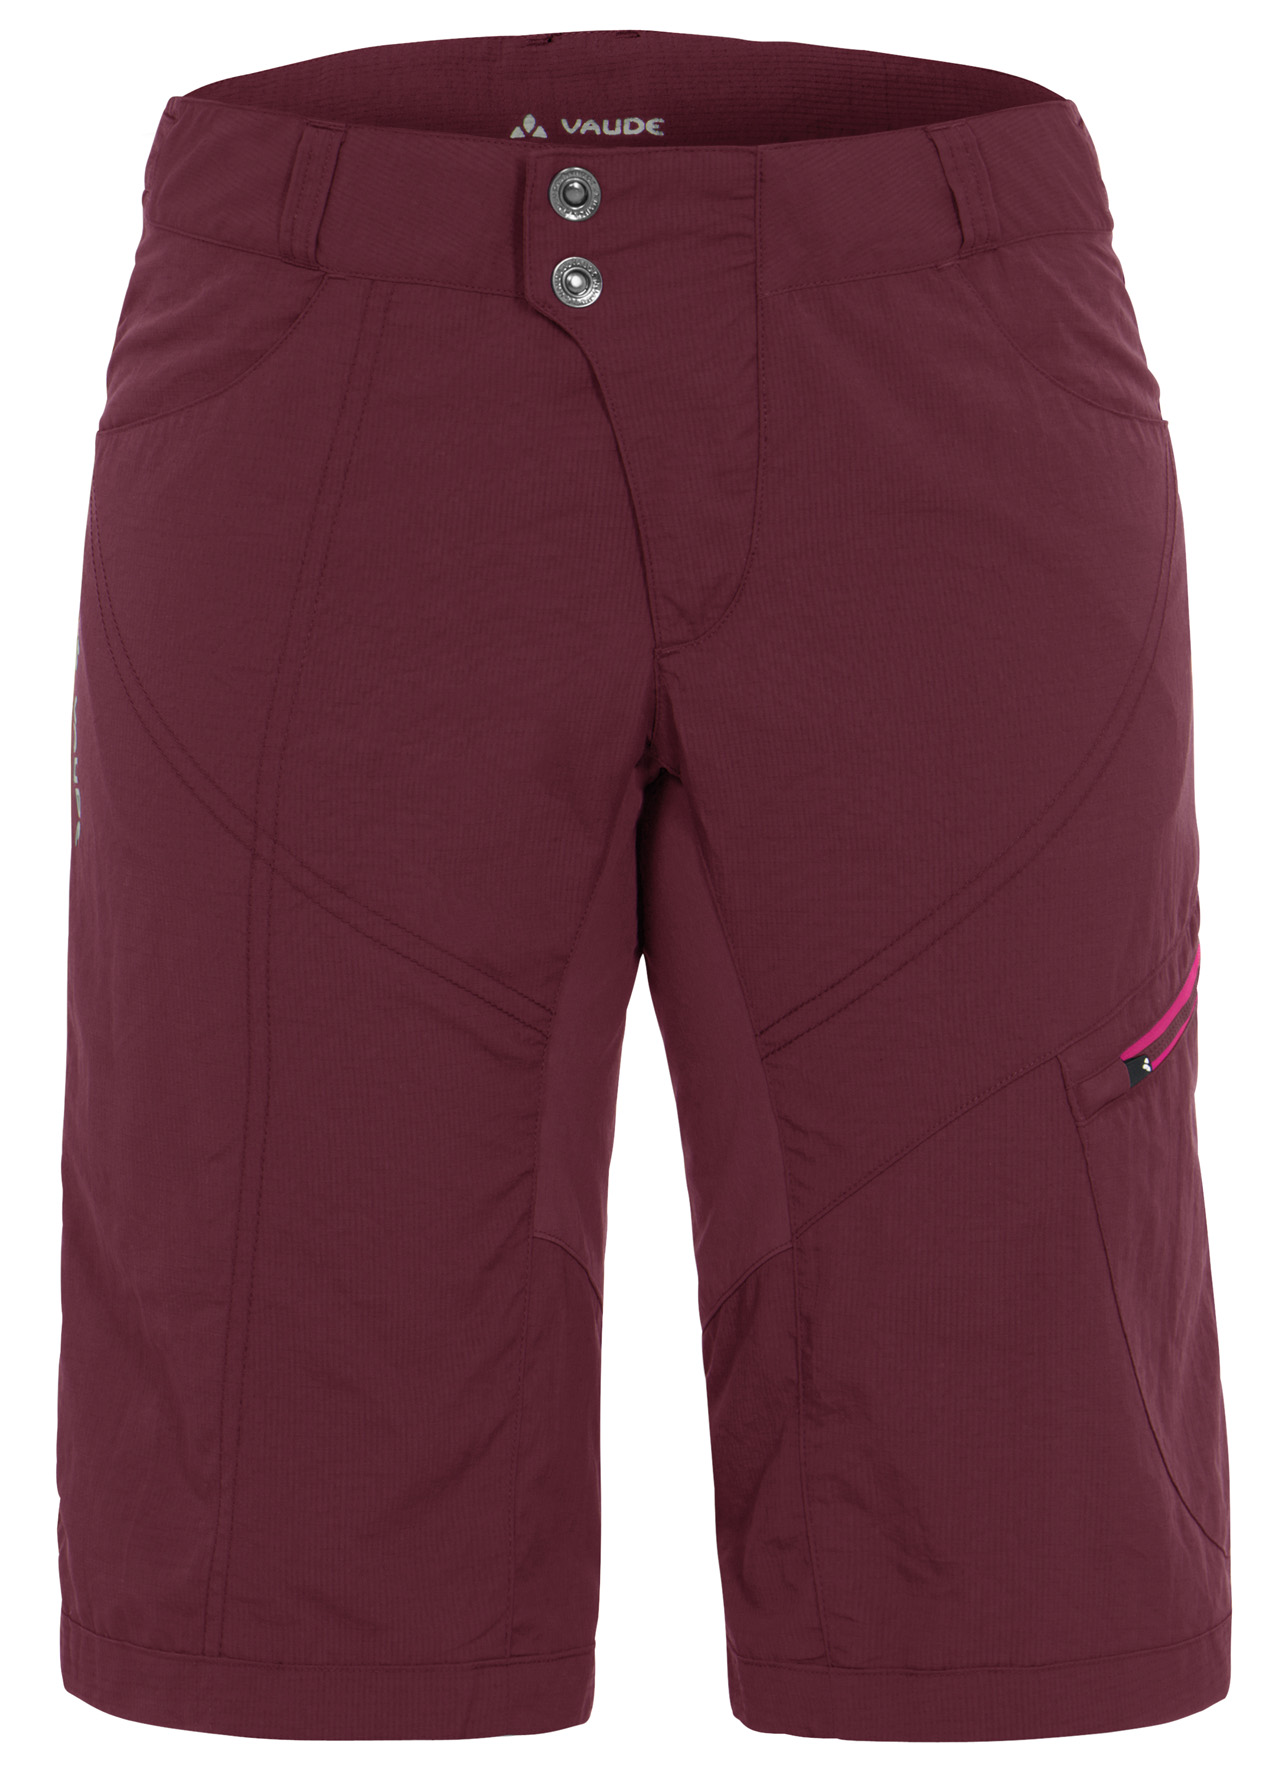 Women´s Tamaro Shorts claret red Größe 36 - schneider-sports